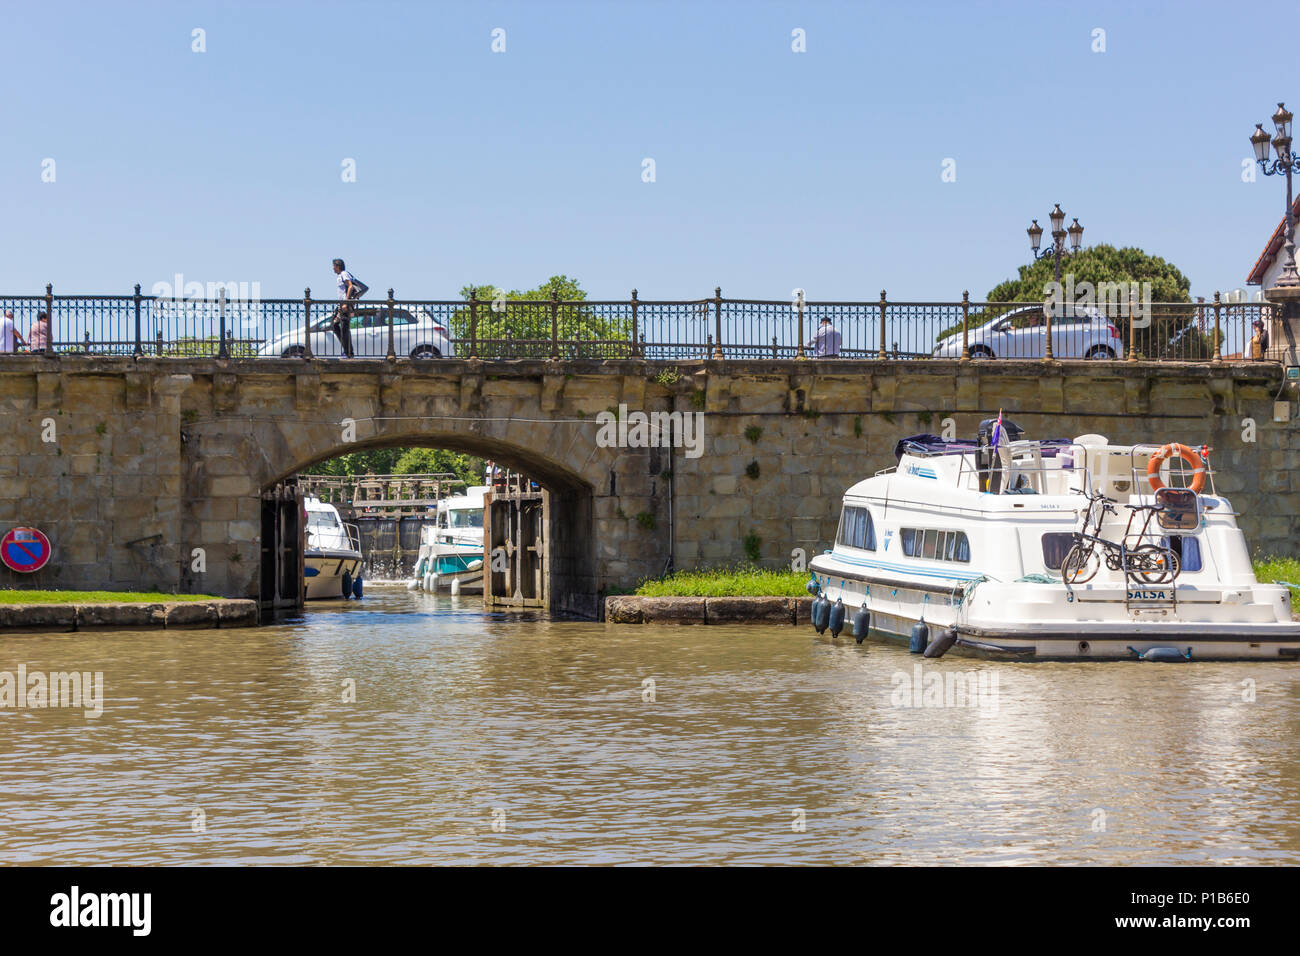 The Canal du Midi, Carcassonne, French department of Aude, Occitanie Region, France. Boats waiting to pass through the lock gates. - Stock Image